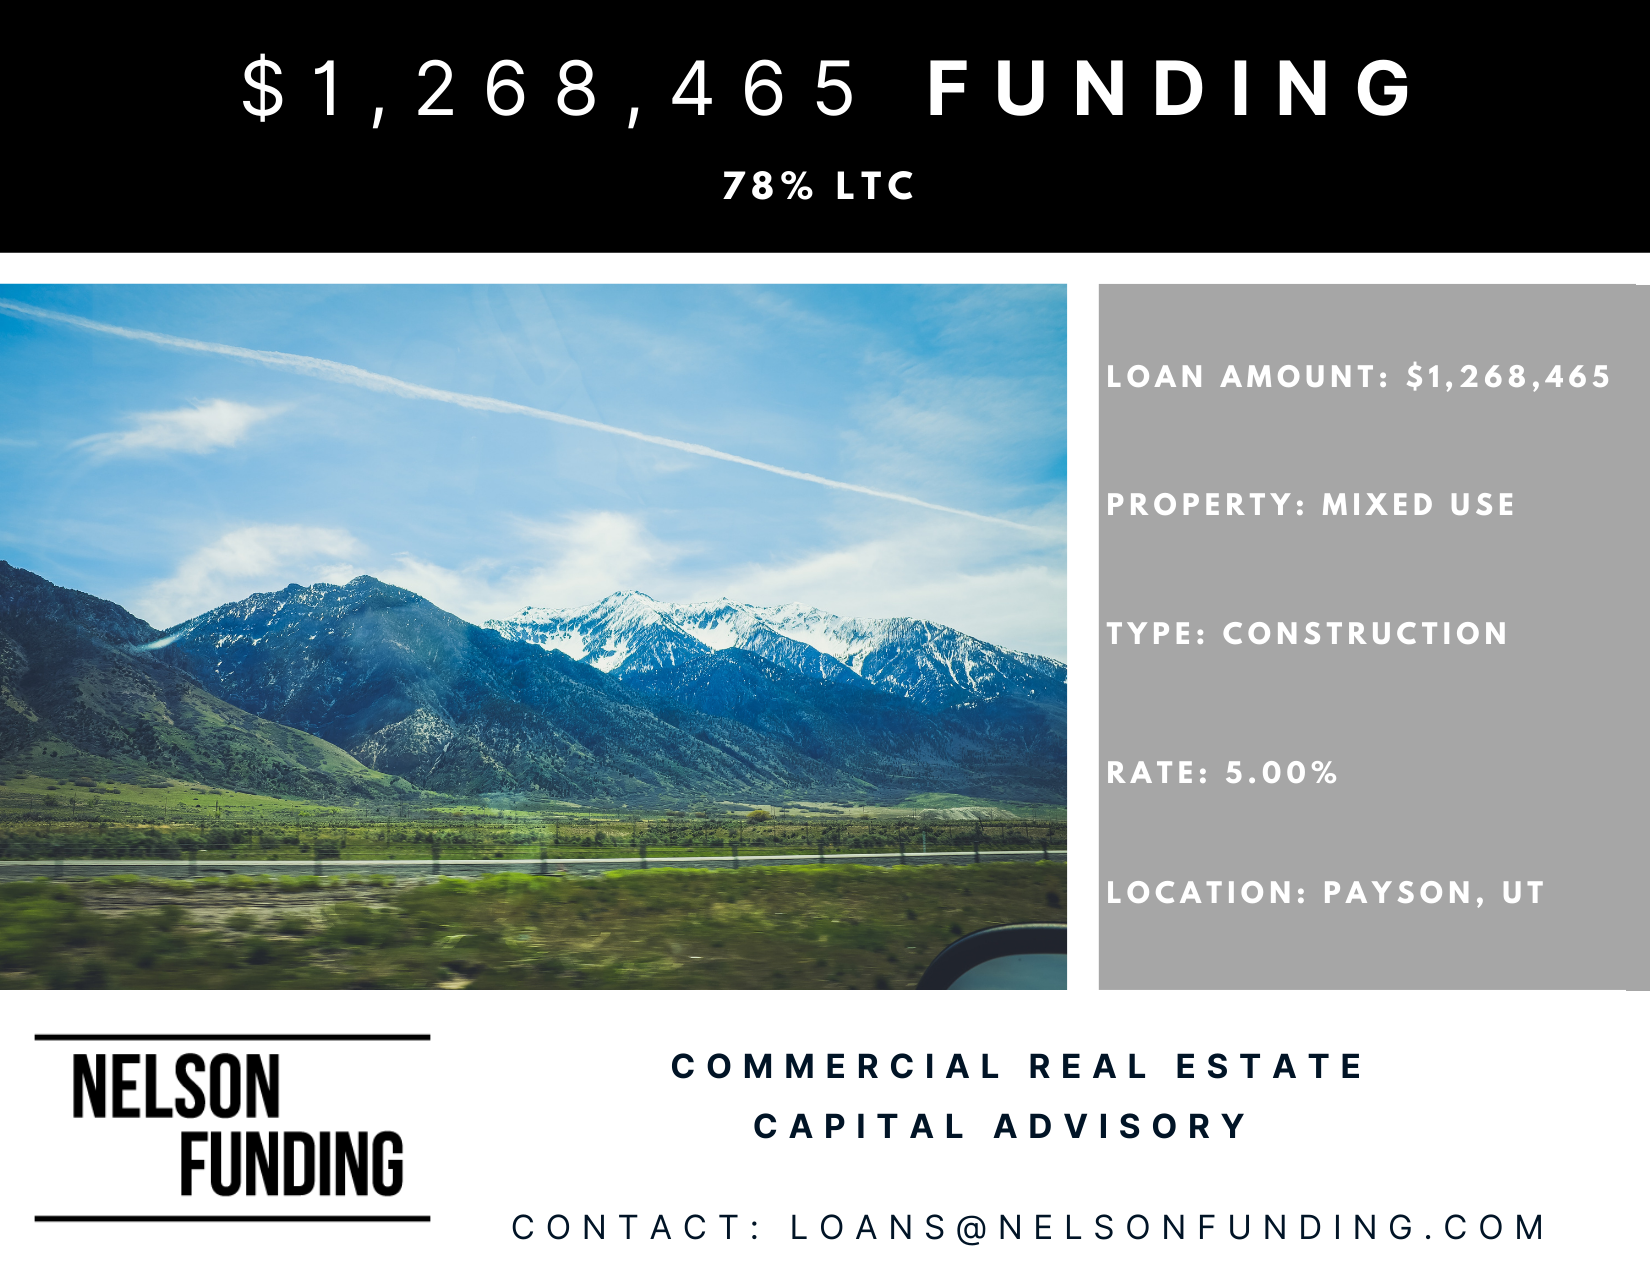 Nelson Funding Closes Construction Loan In Payson, Utah